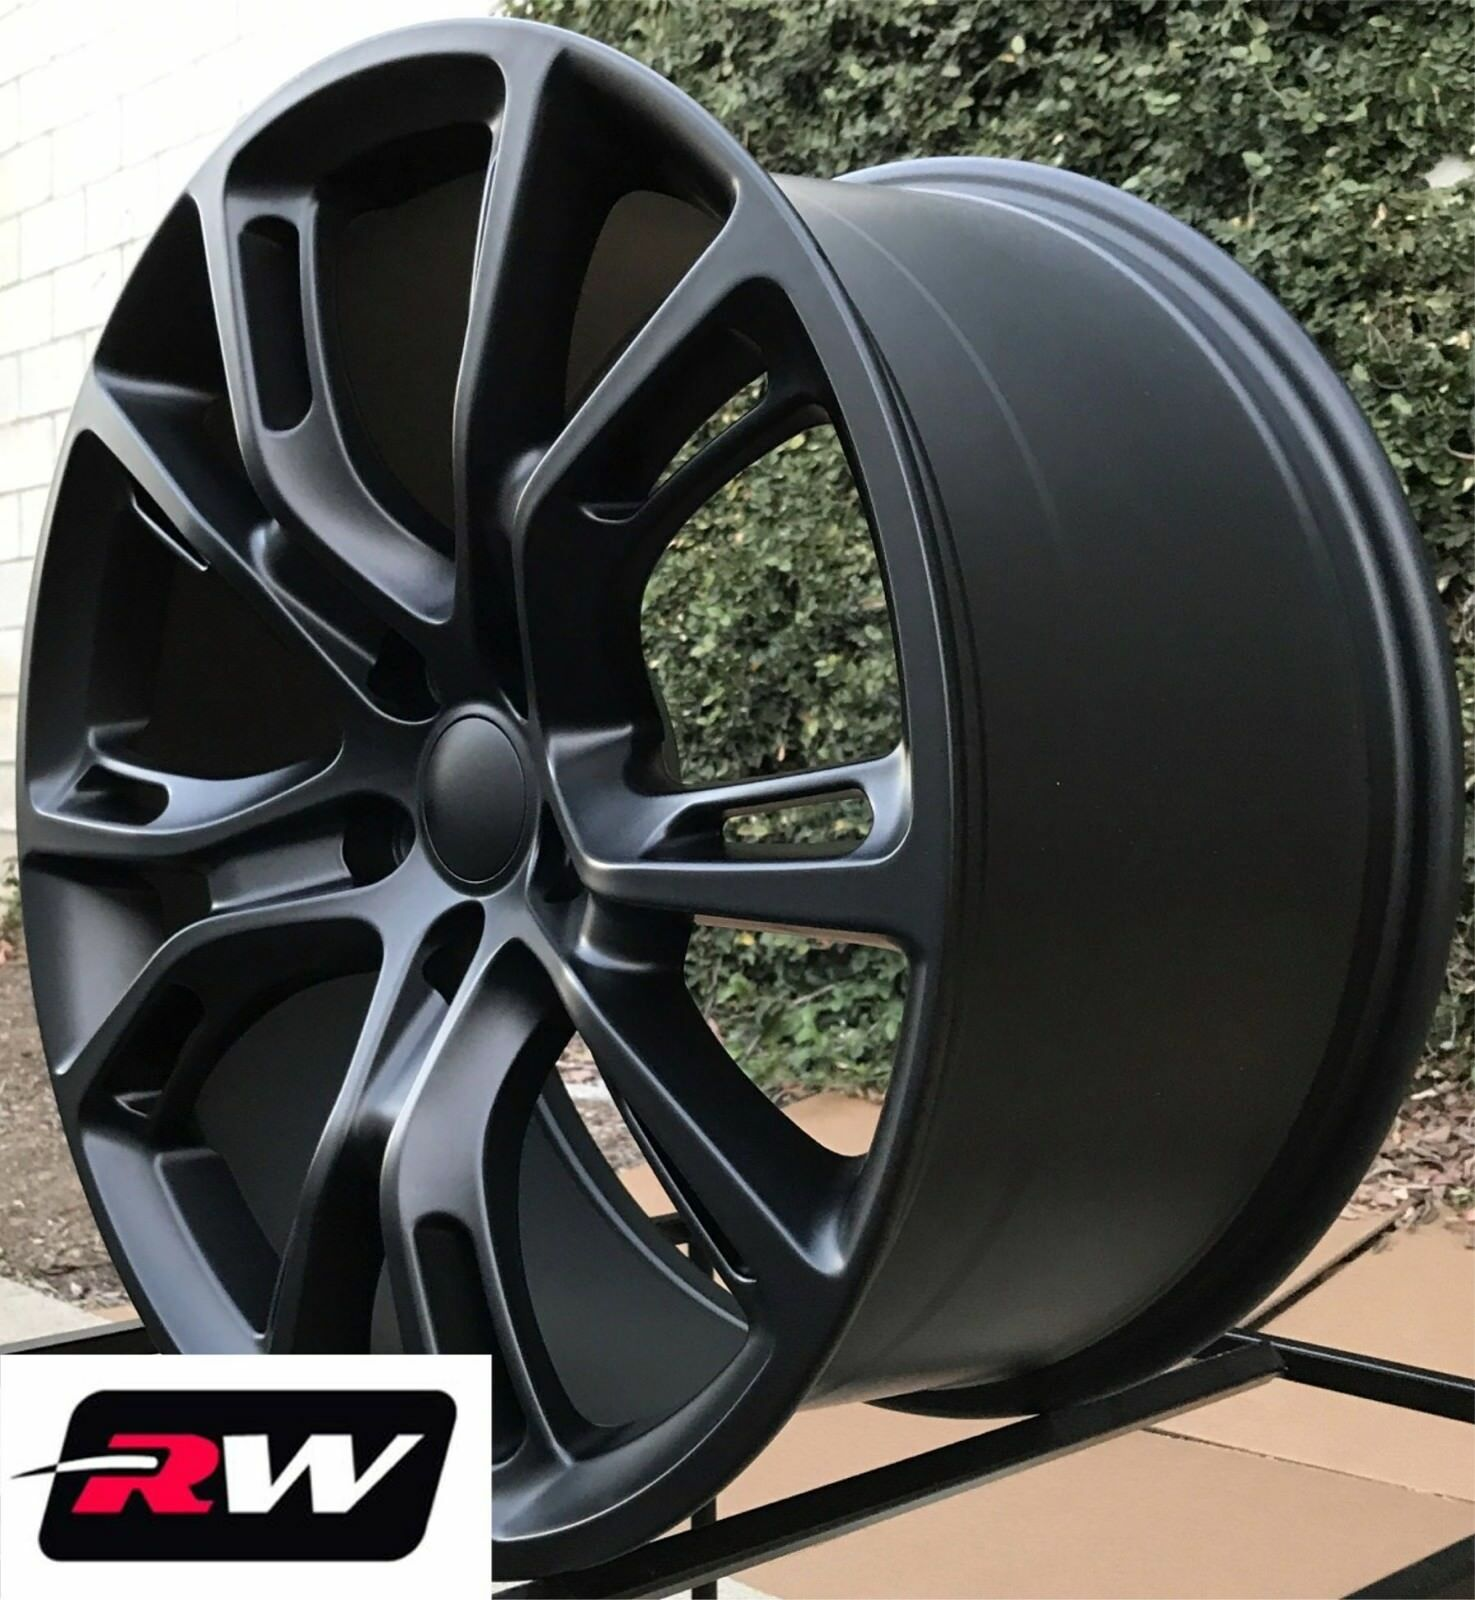 jeep wheels cherokee rims grand replica matte inch factory oe srt8 staggered 20x9 rwreplicas